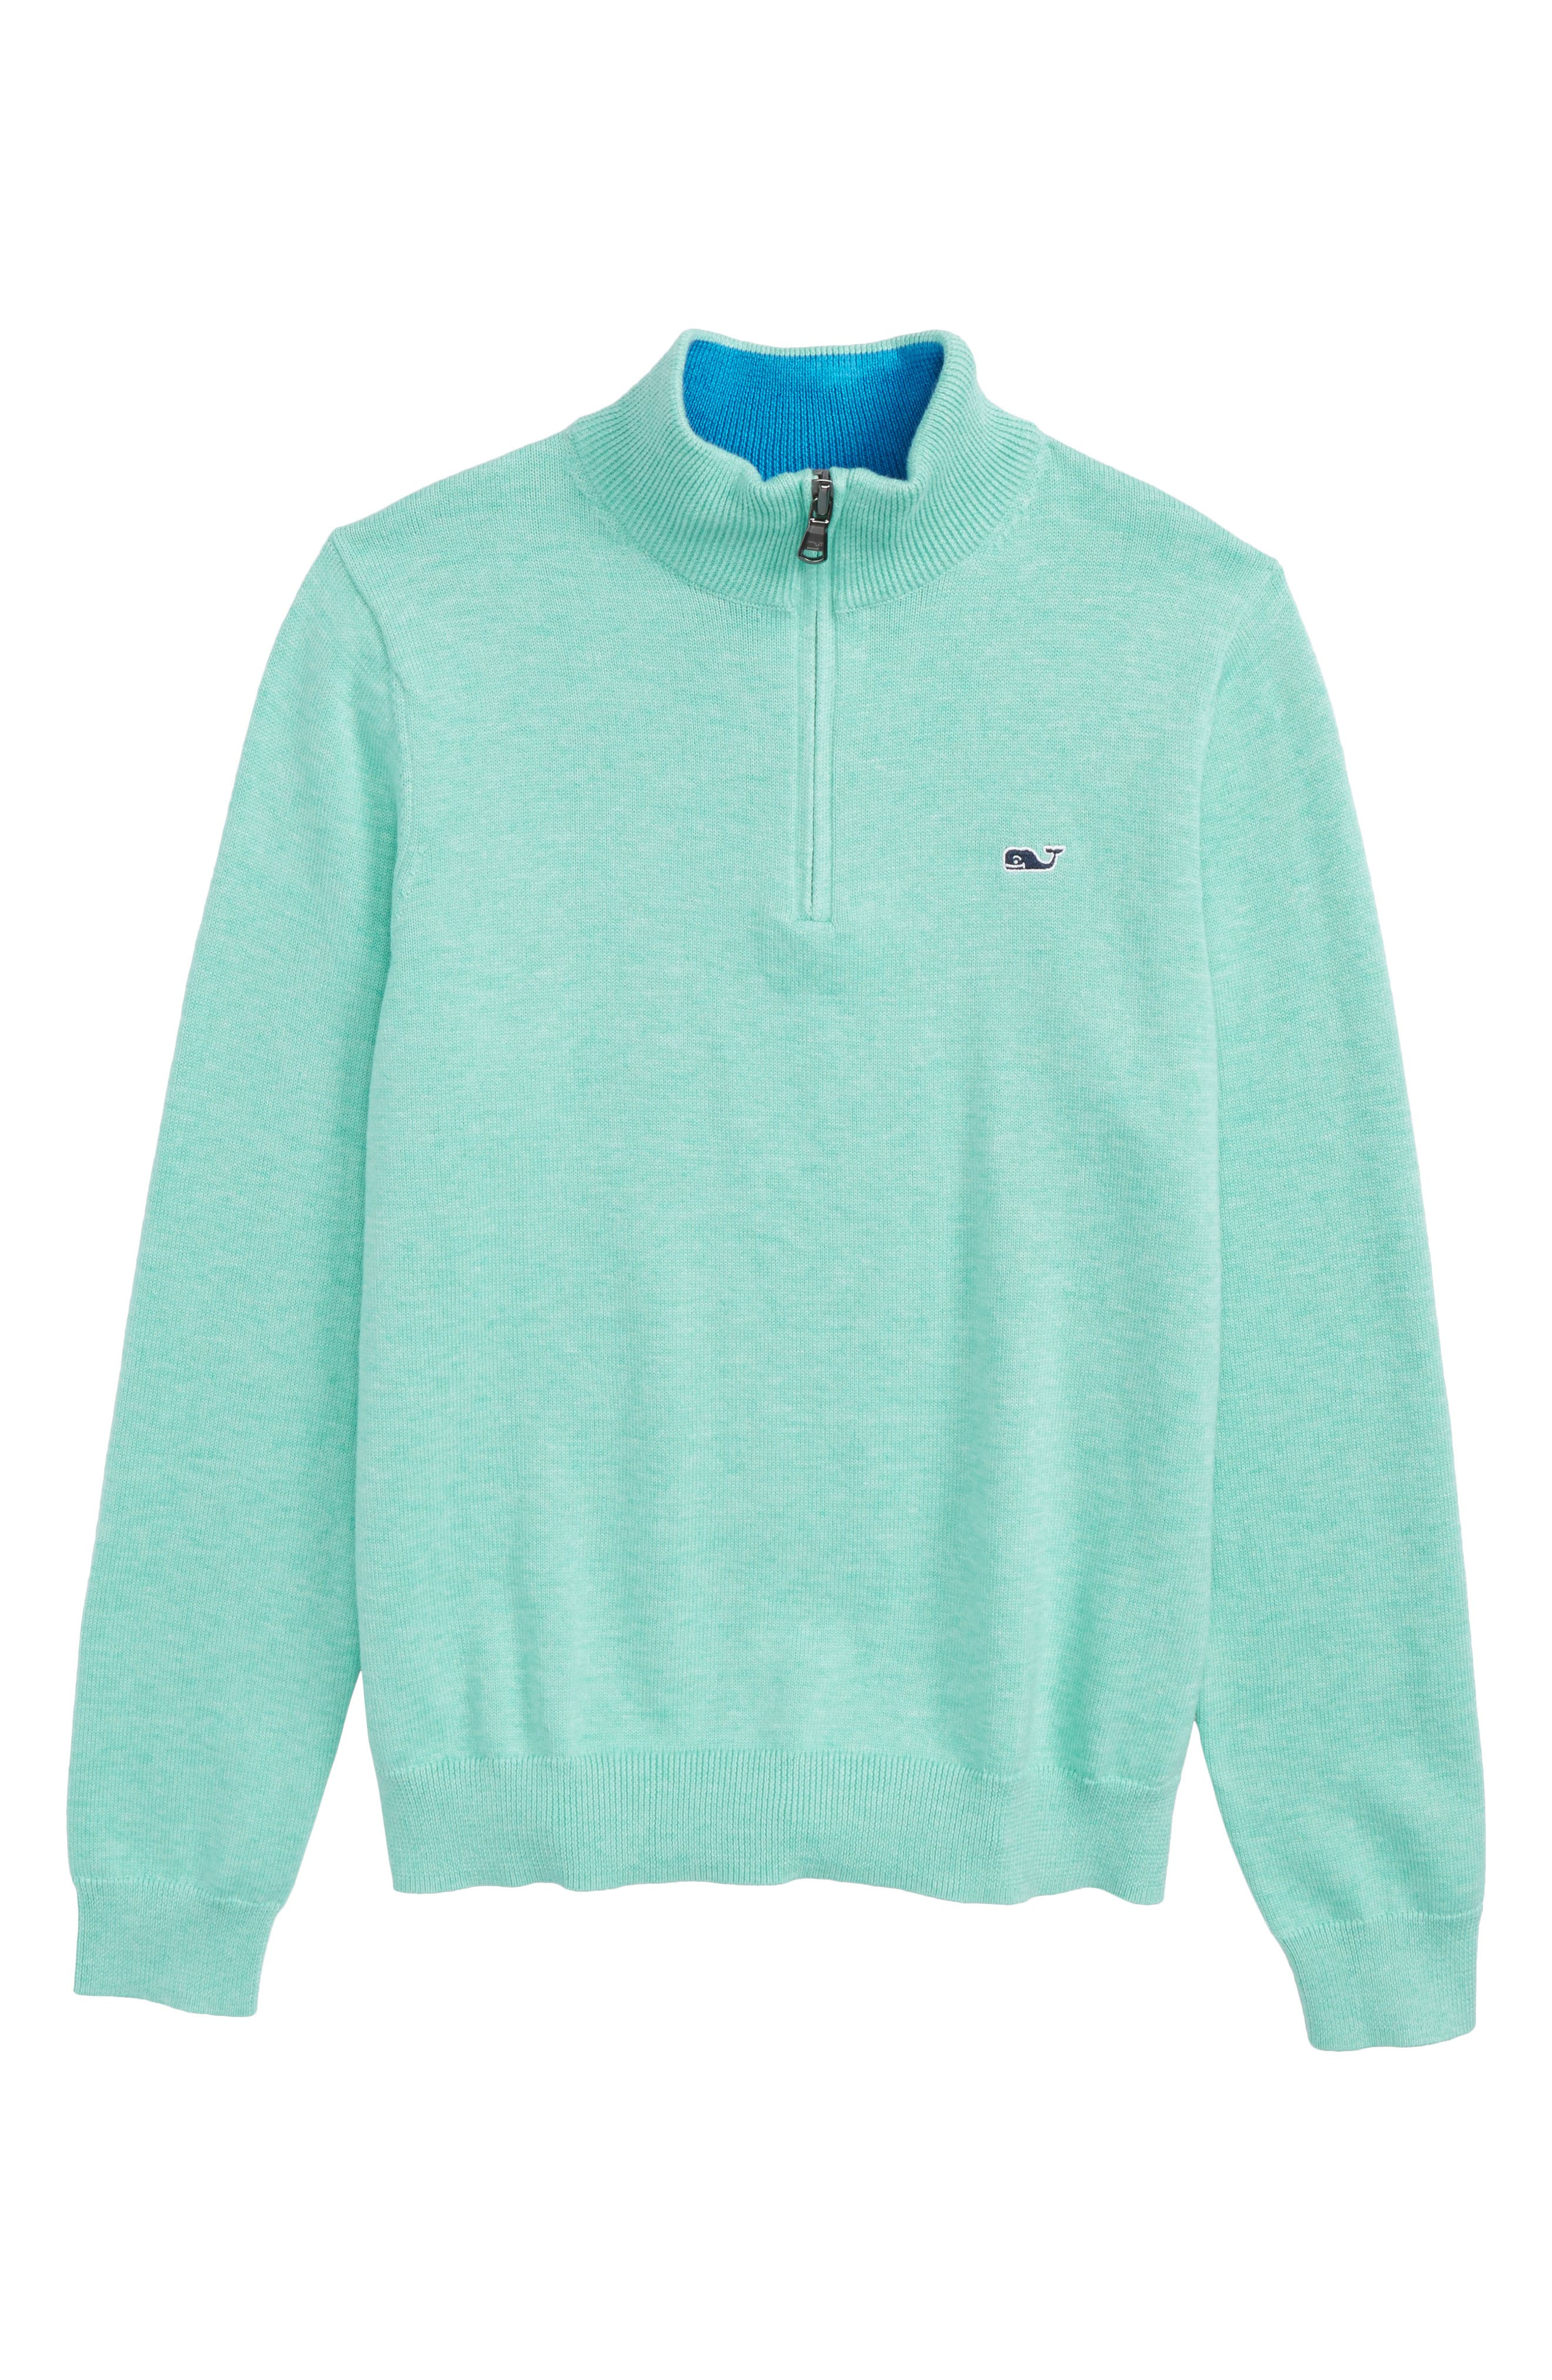 Mock Neck Quarter Zip Pullover,                             Main thumbnail 1, color,                             Sea Foam